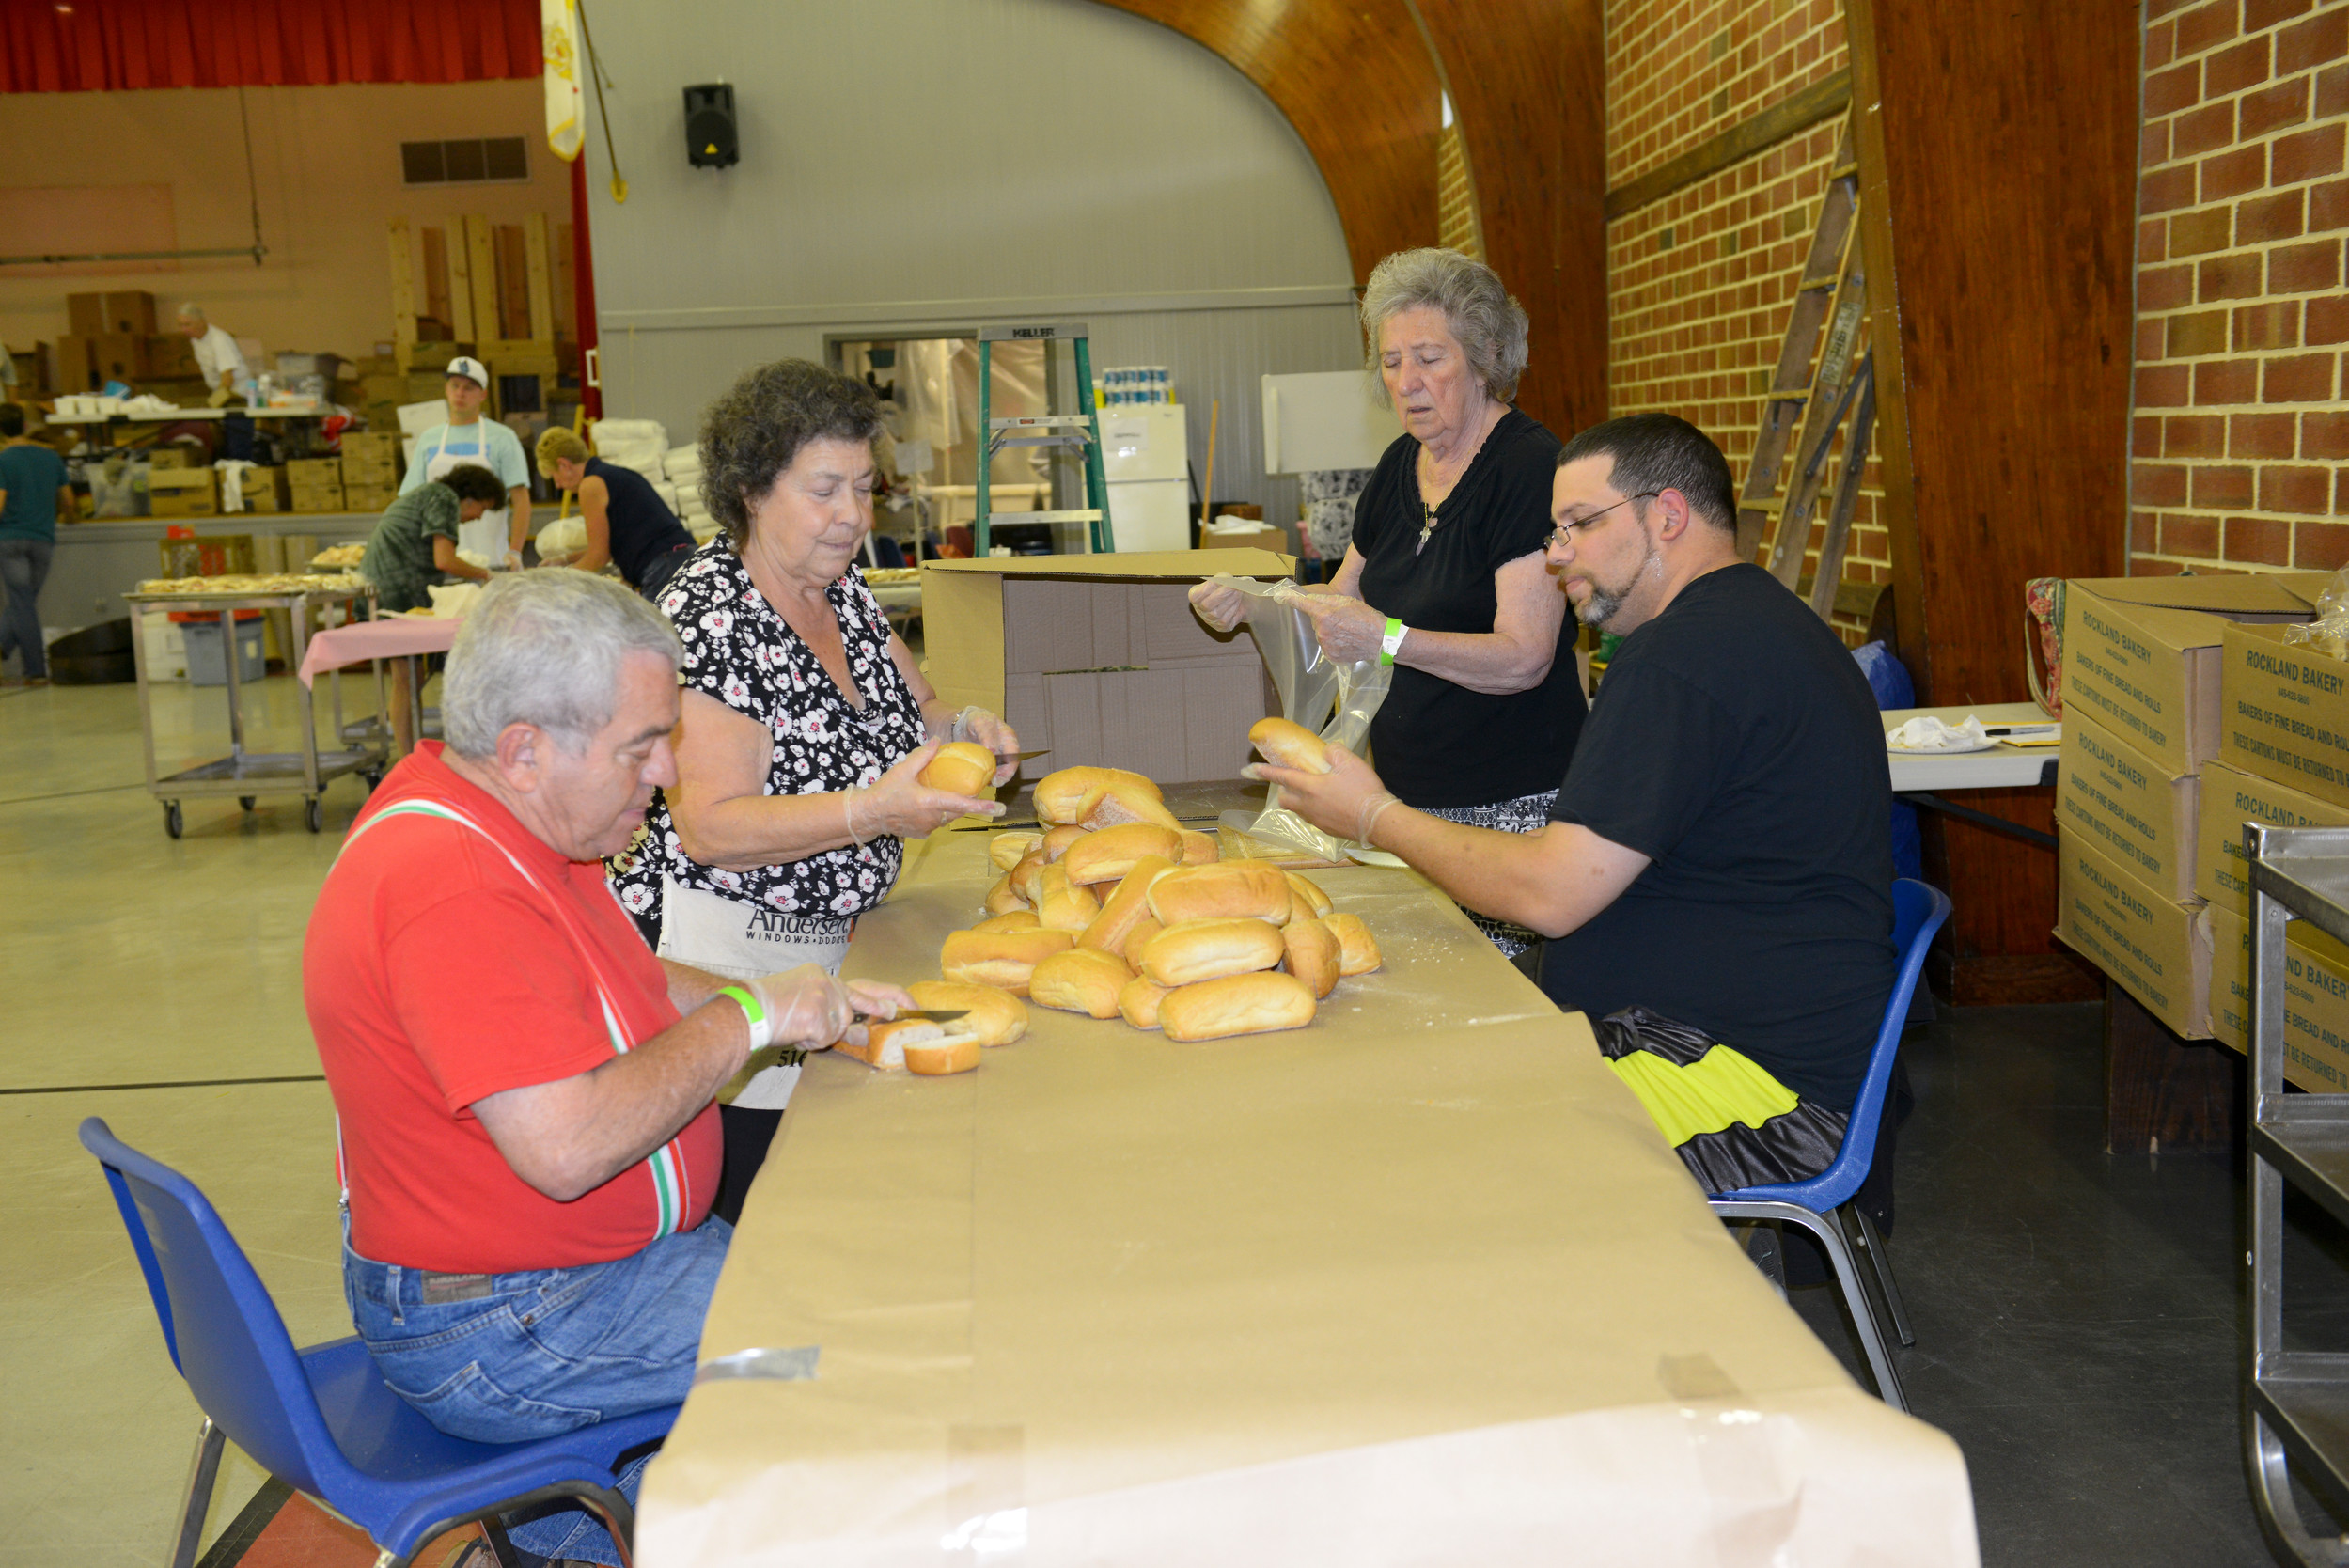 Henry Monteverdi, left, Sylvia Leo, Mayann Guarino and Andy Otero slice bread for sandwhiches at the San Gennarro Feast